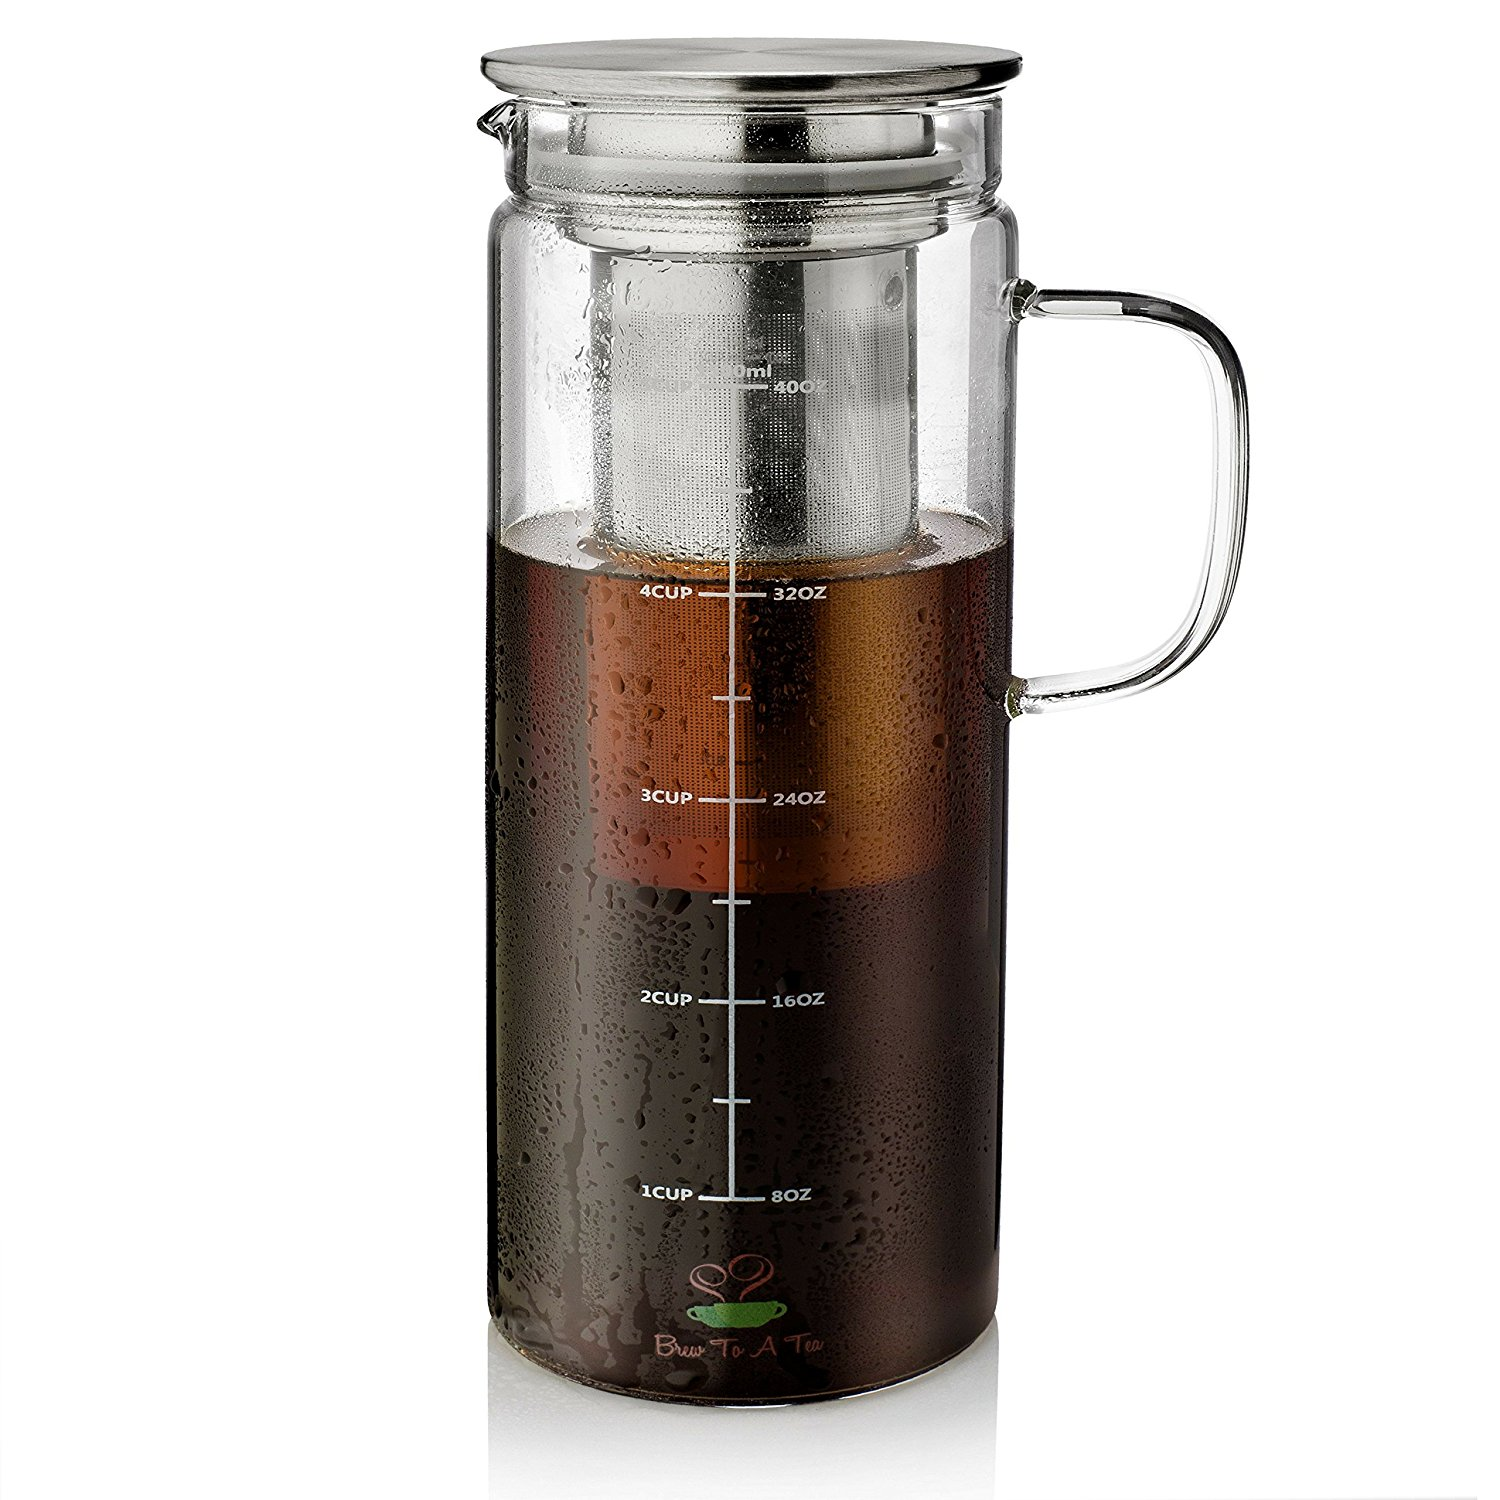 Airtight cold brew coffee maker reviews